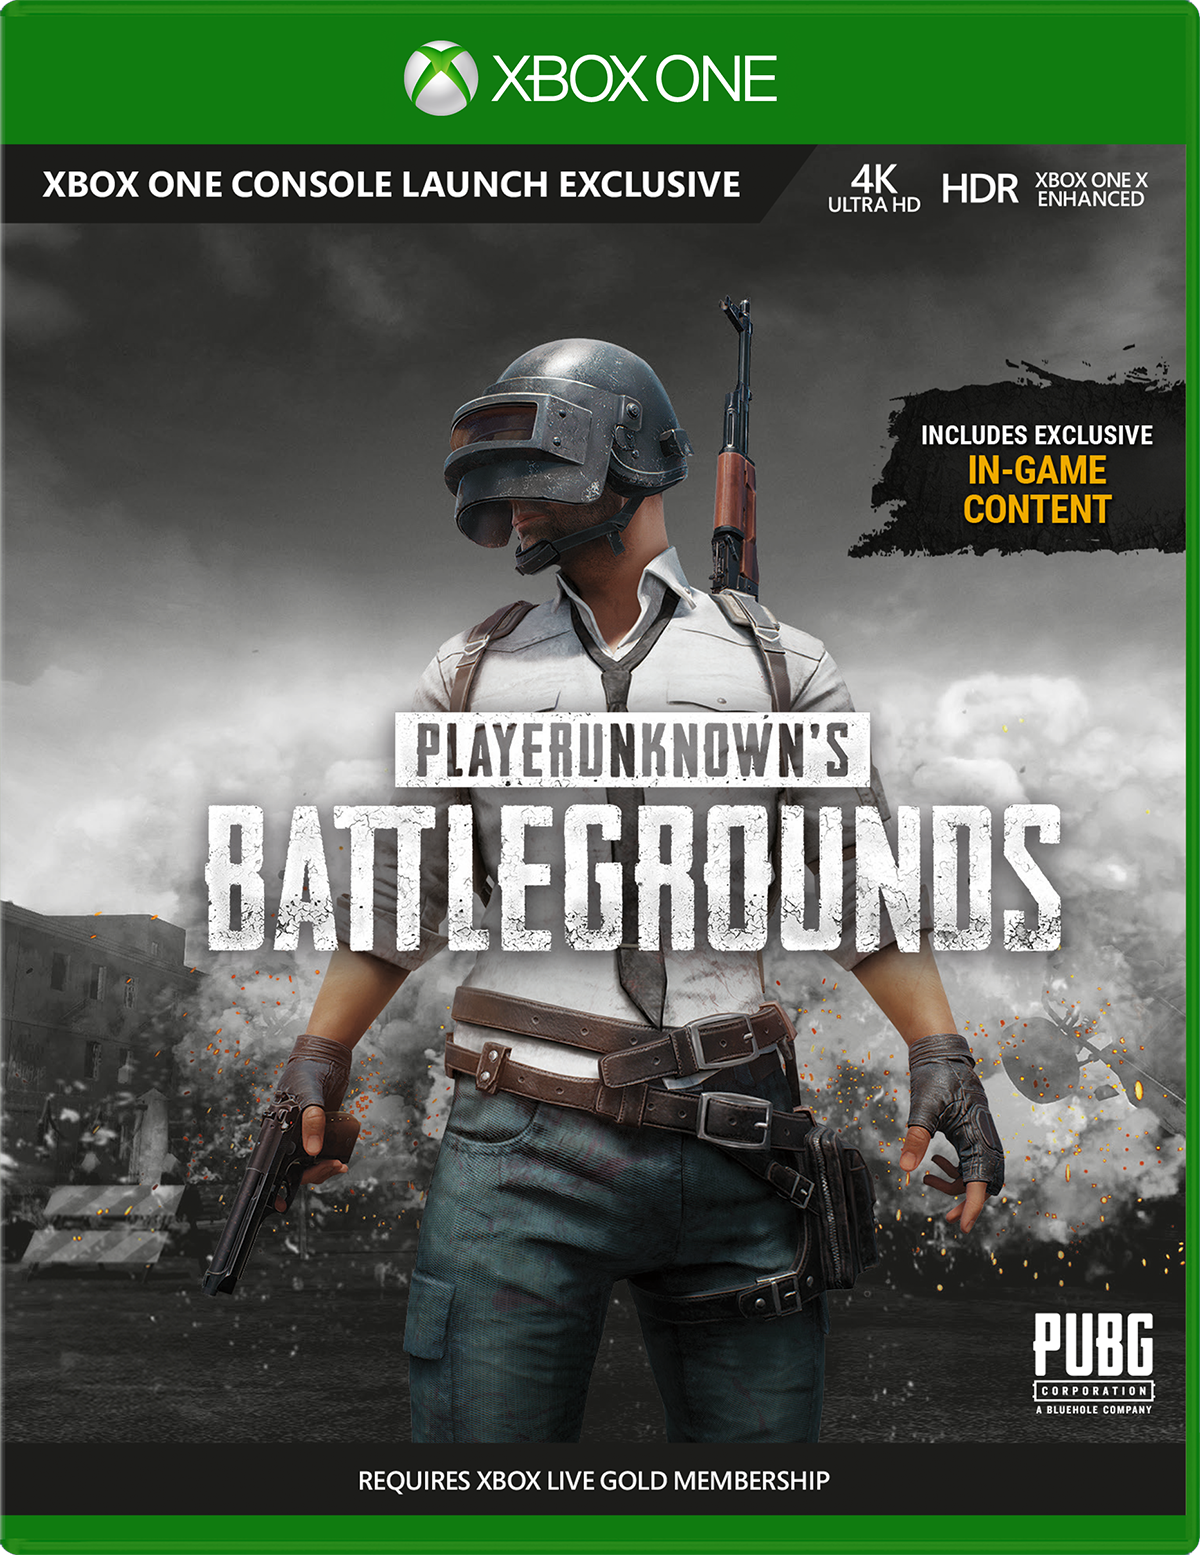 PLAYERUNKNOWN'S BATTLEGROUNDS 1.0 keyart